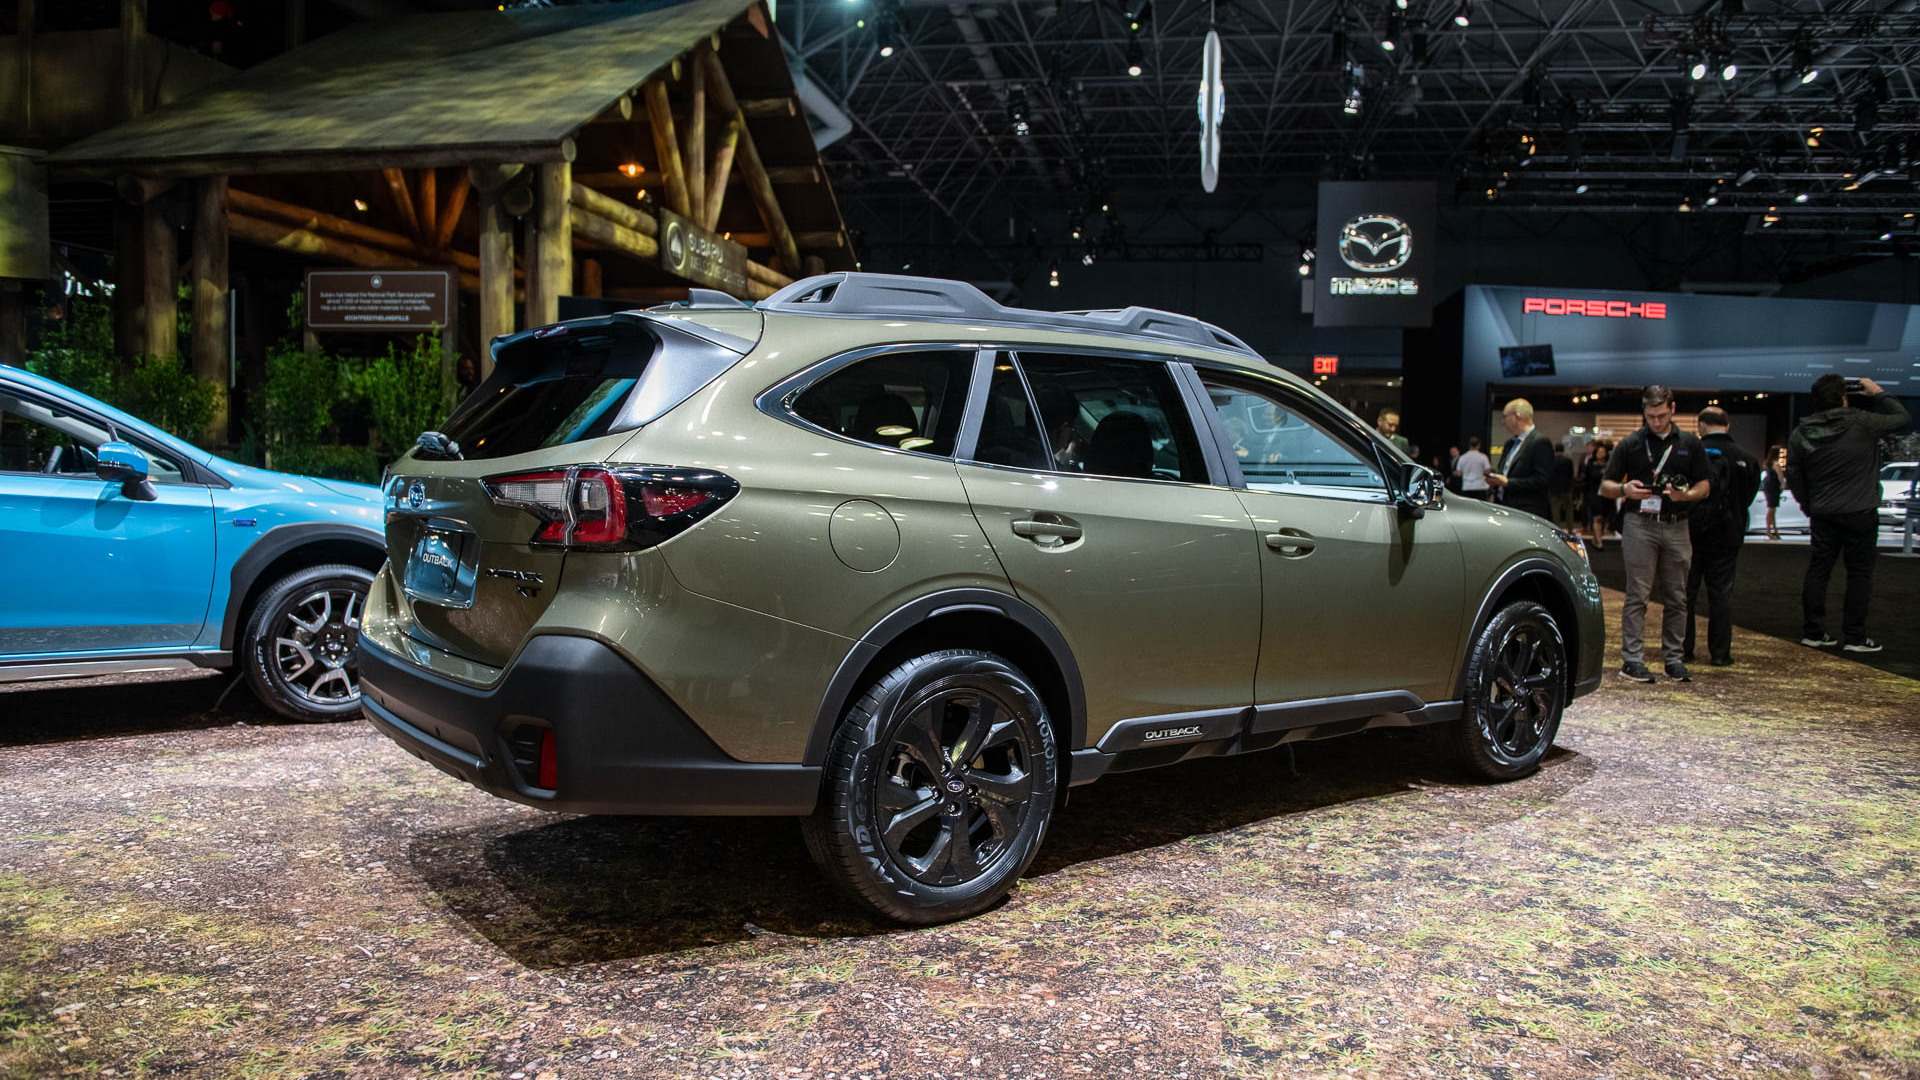 2020 Subaru Outback Debuts With Available Turbo Power